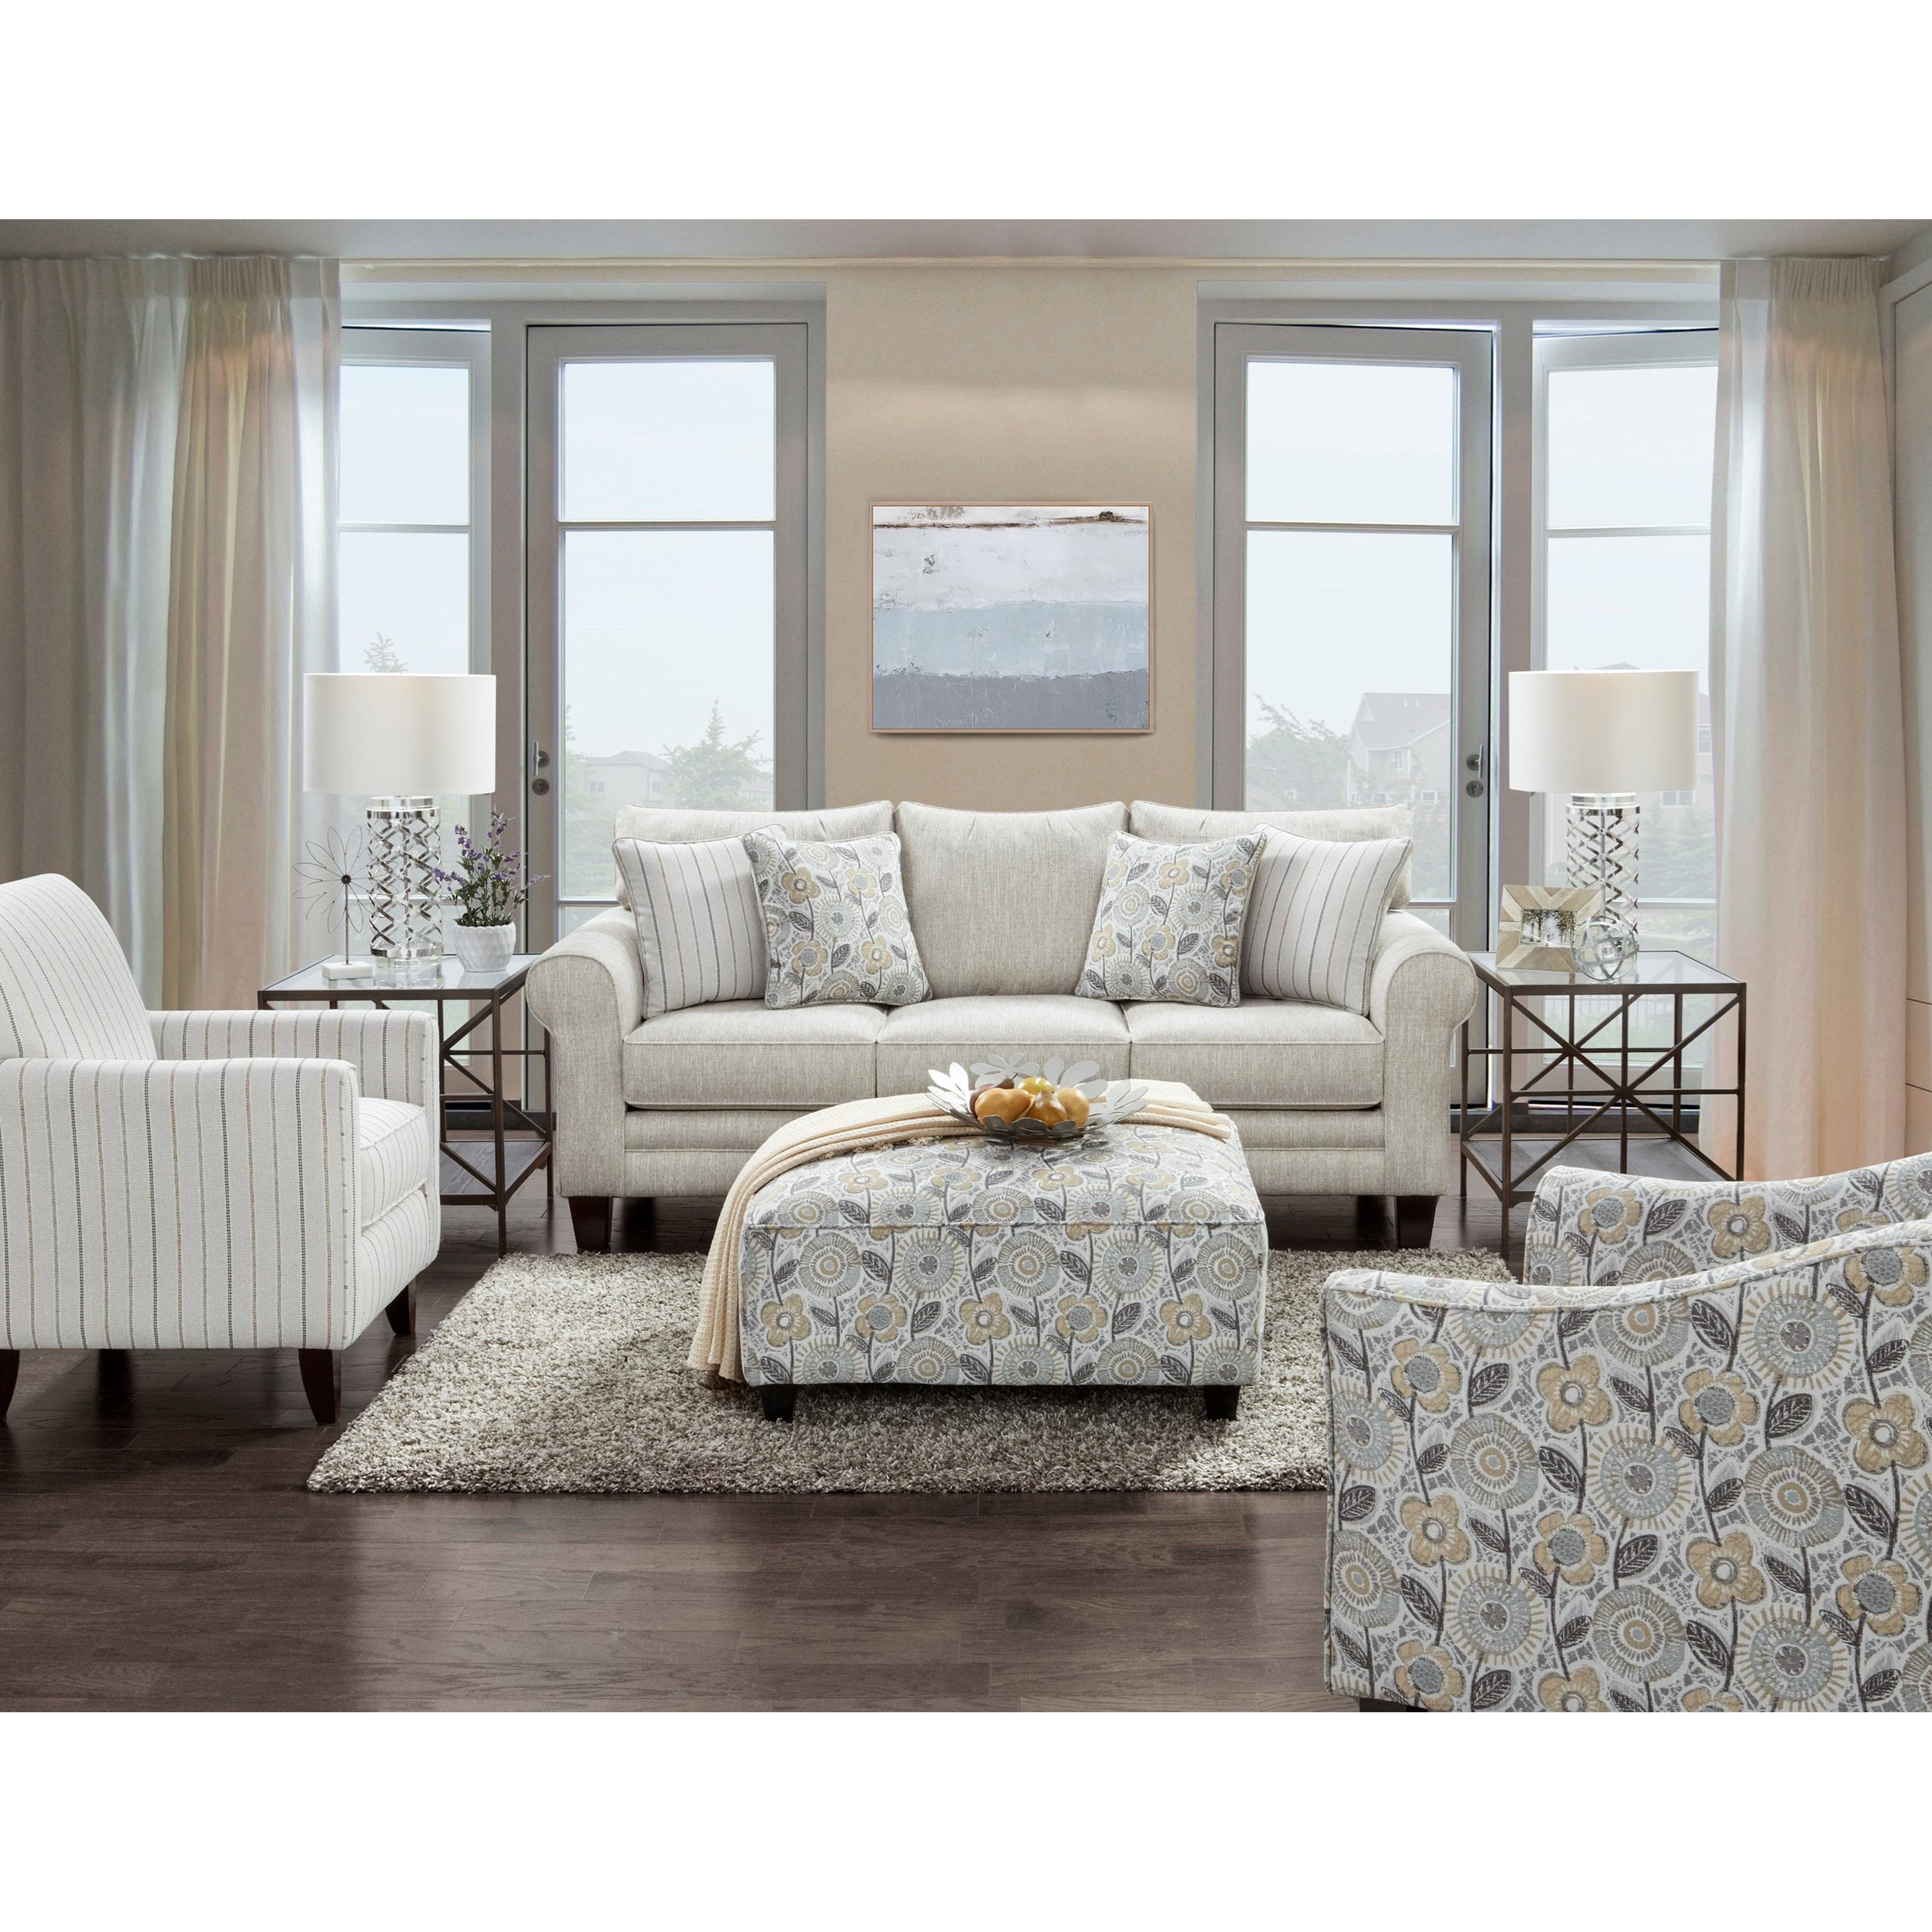 1140 Living Room Group by Fusion Furniture at Furniture Superstore - Rochester, MN